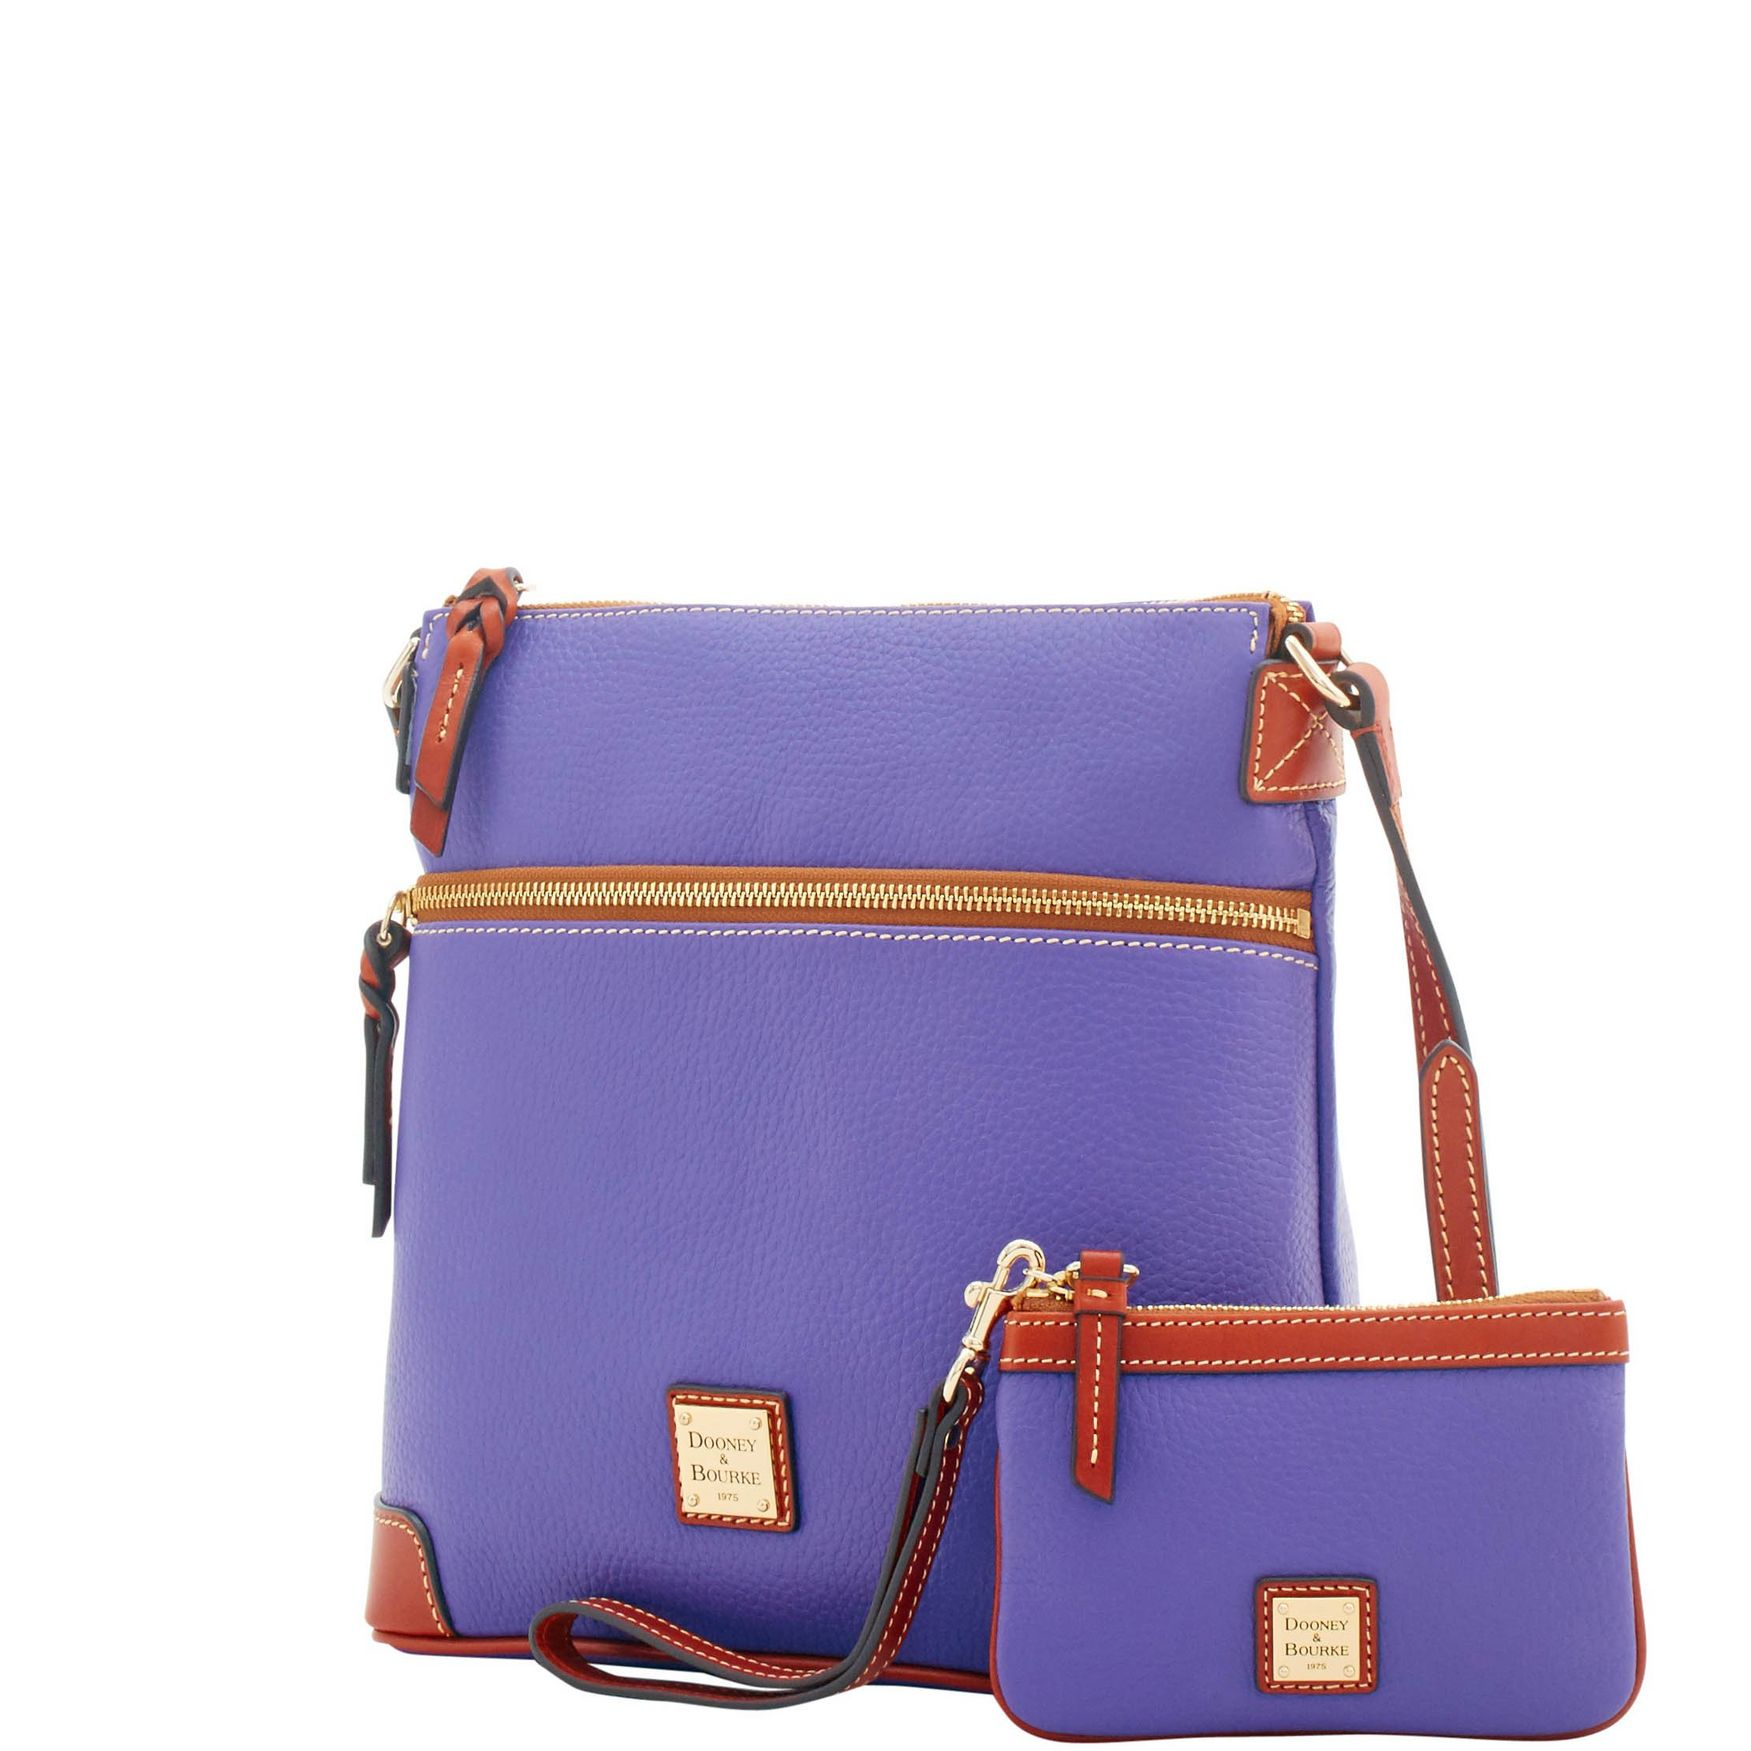 Dooney-amp-Bourke-Pebble-Grain-Crossbody-Medium-Wristlet-Shoulder-Bag thumbnail 4